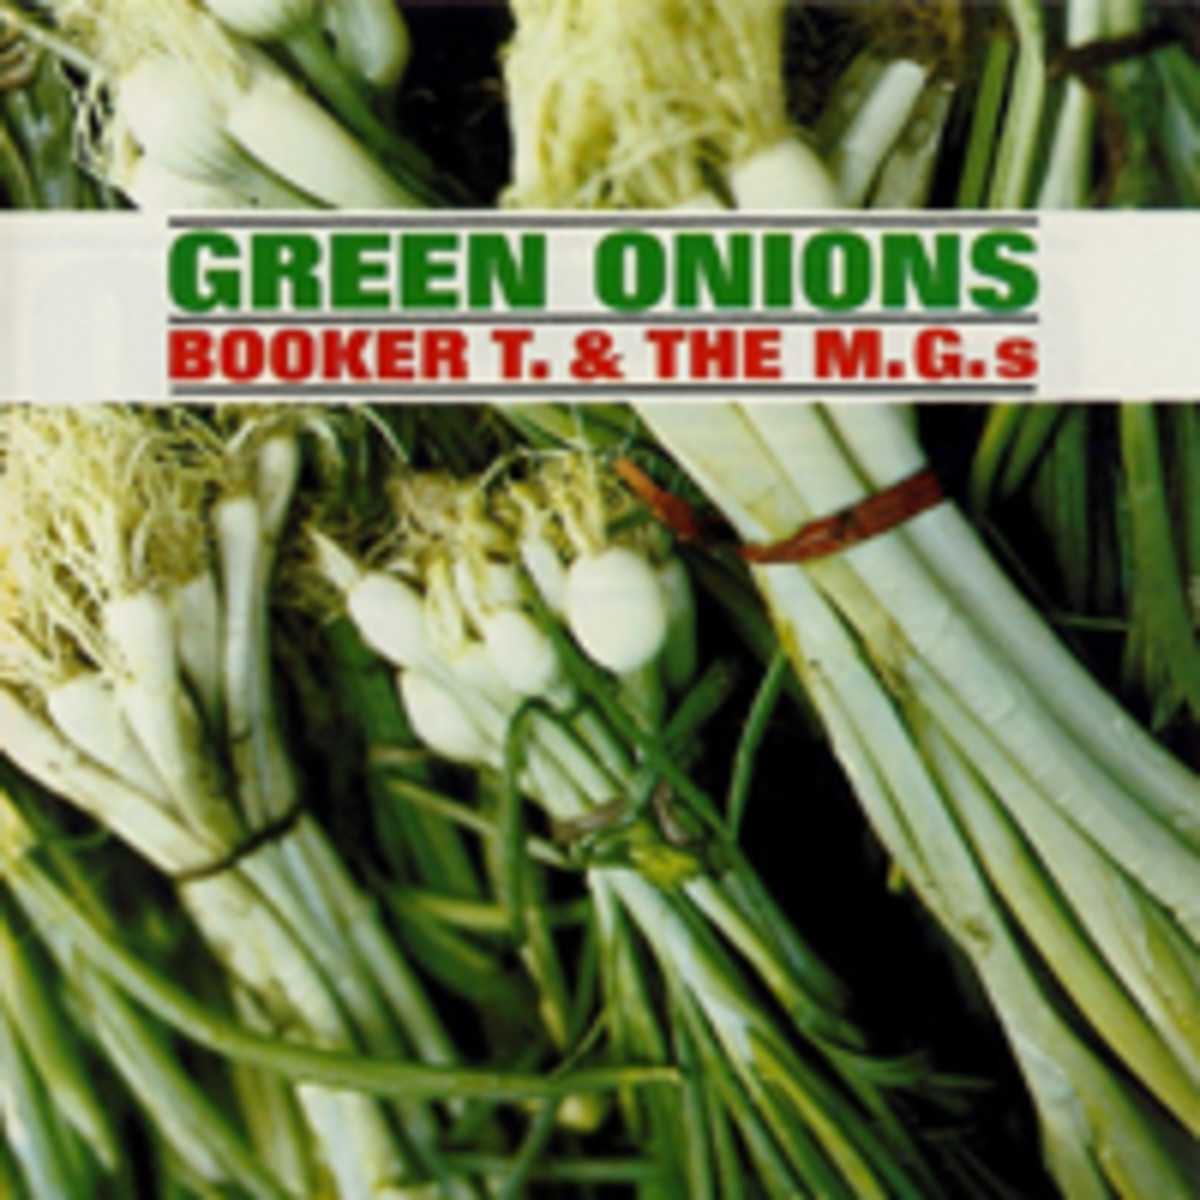 Booker T and the MG's Green Onions album